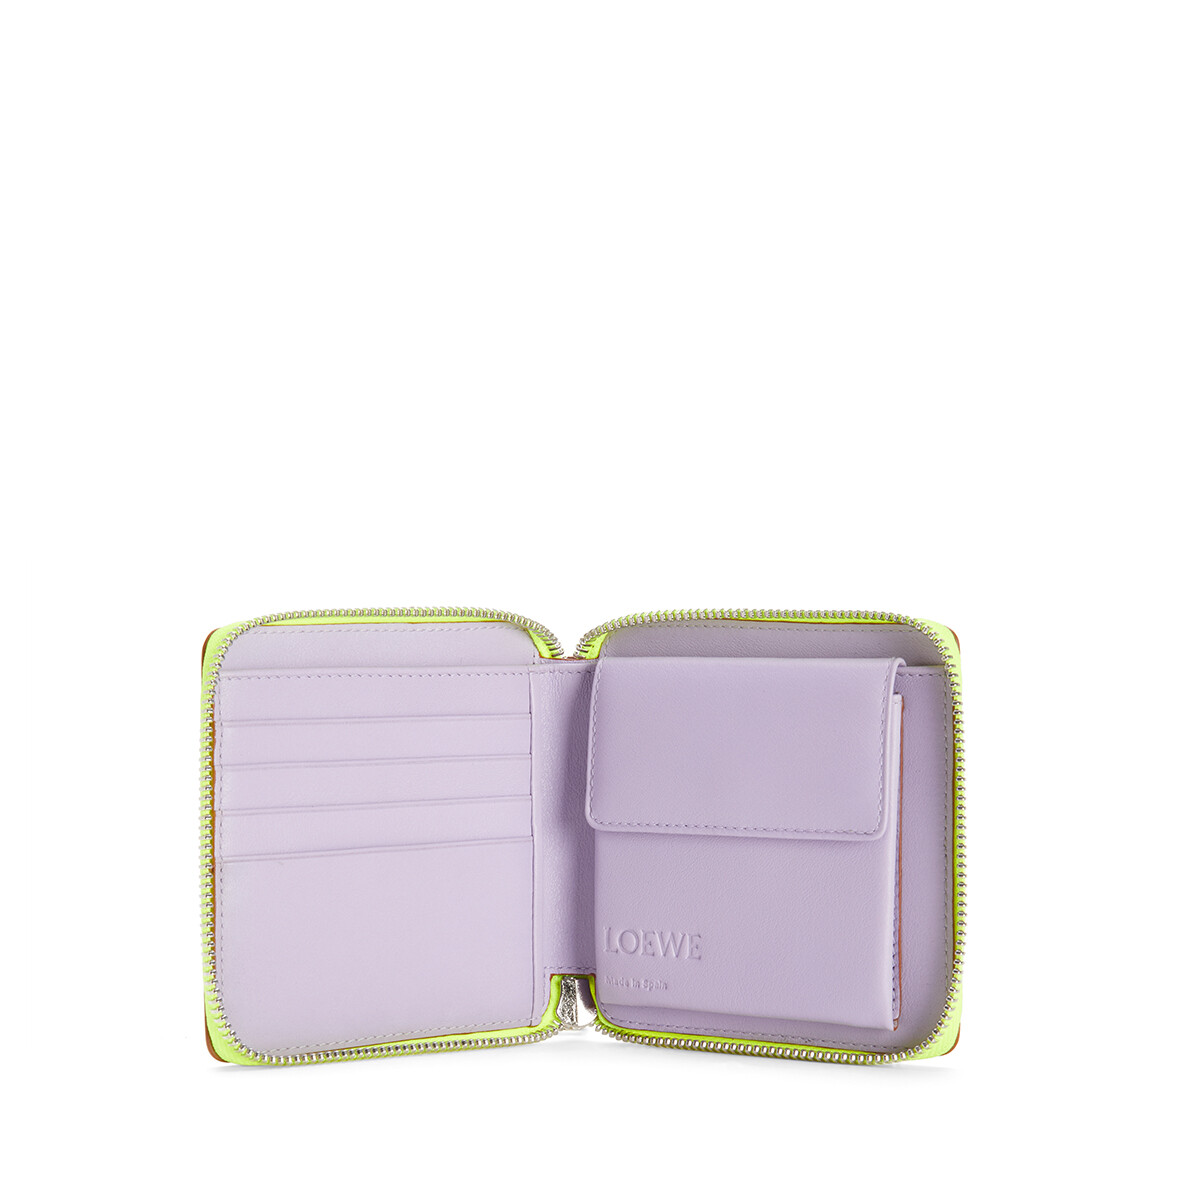 LOEWE Puzzle Square Zip Wallet In Classic Calfskin Mauve/Soft Apricot front